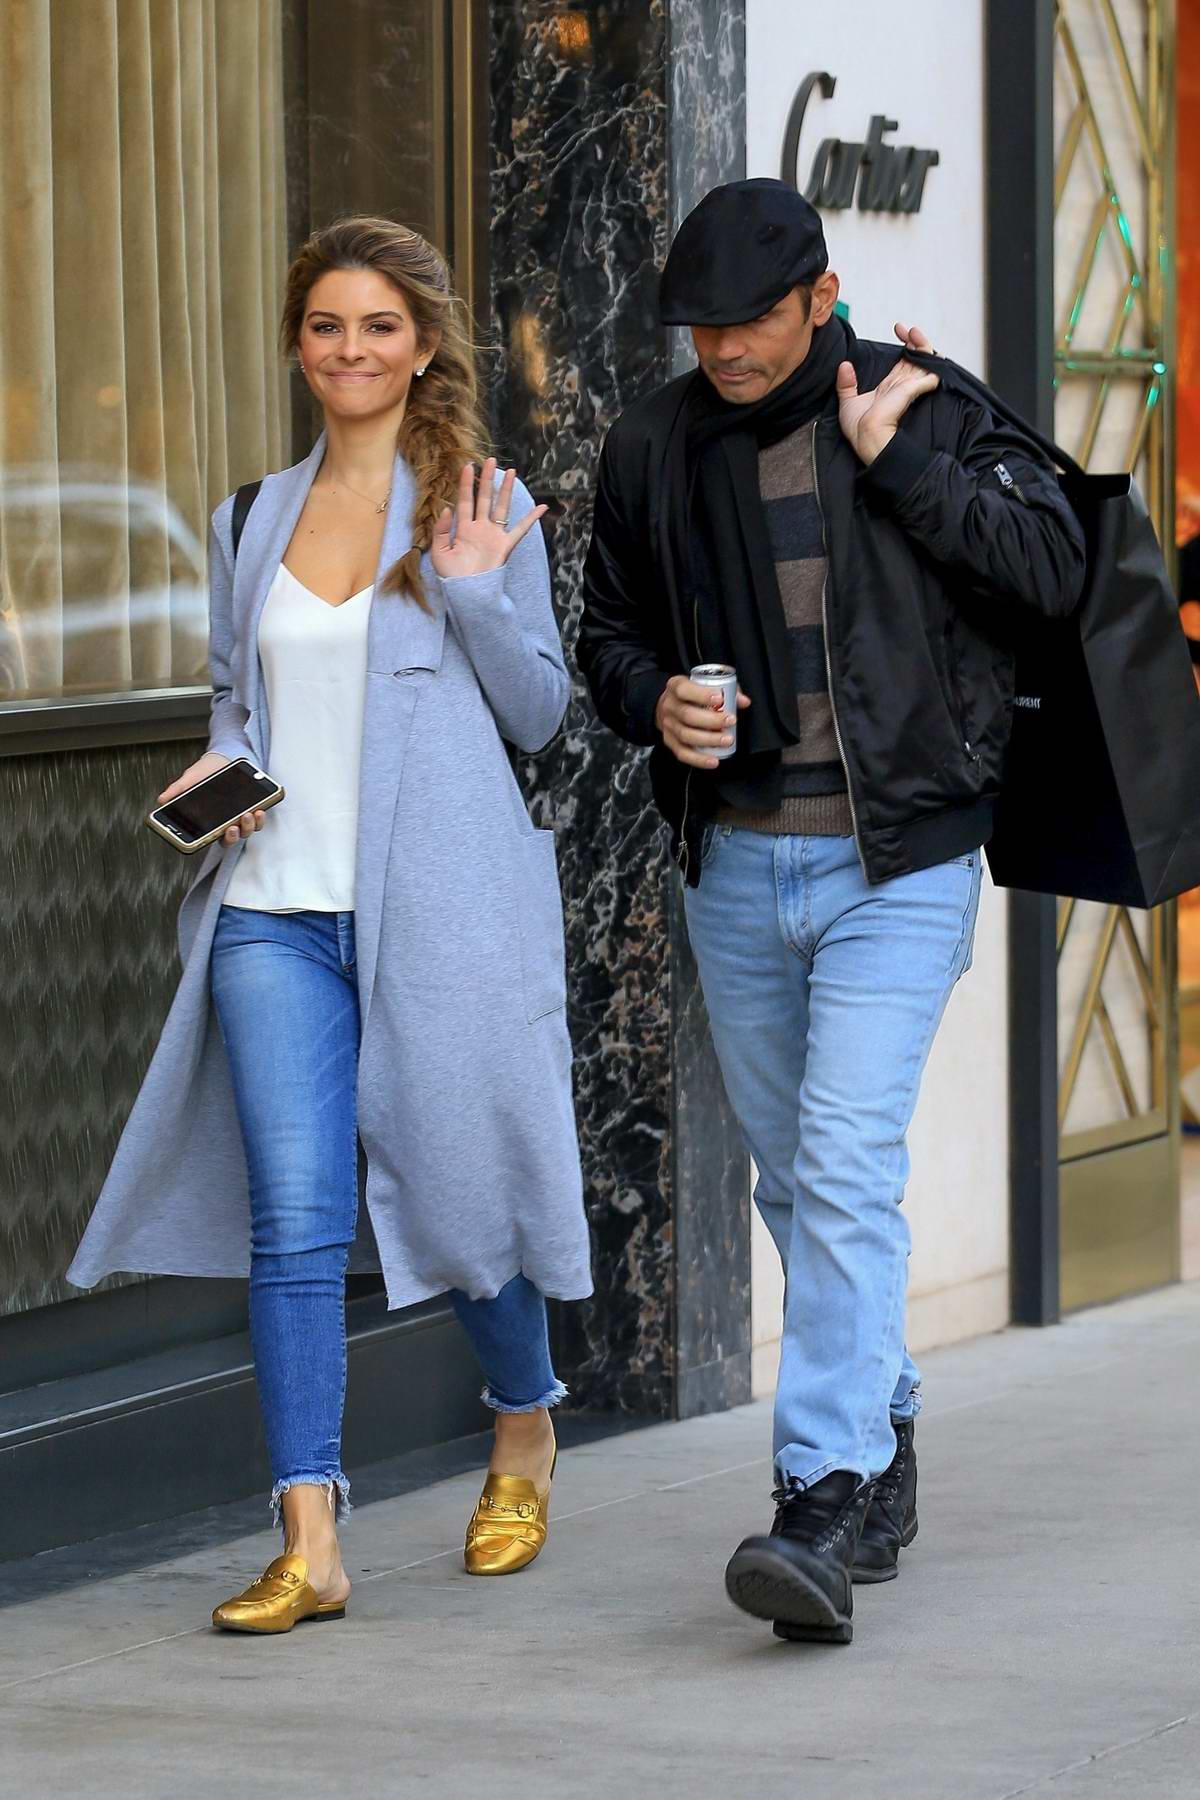 Maria Menounos and Keven Undergaro make a trip to Saint Laurent for Christmas gifts, Beverly Hills, Los Angeles